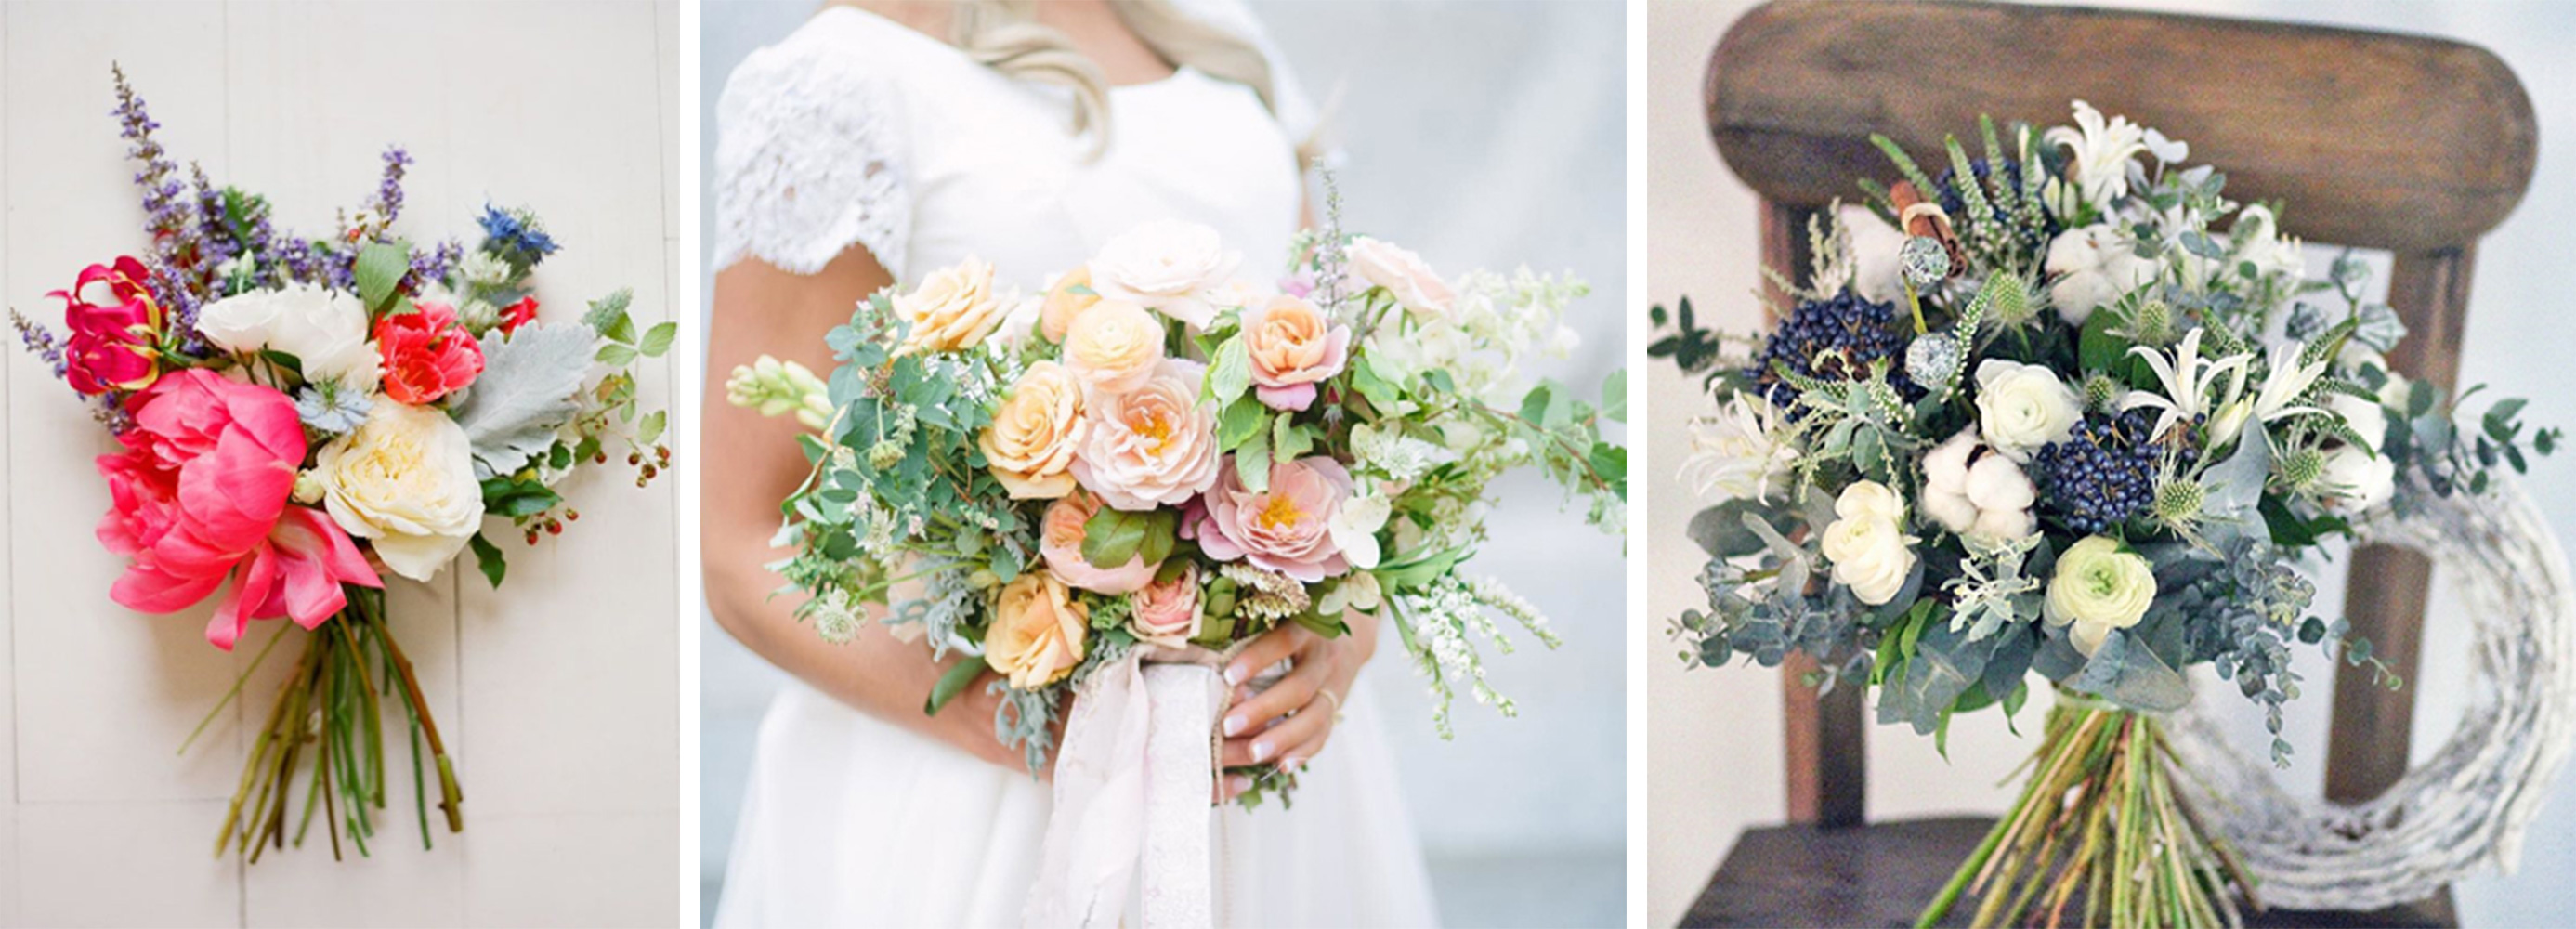 Flower inspiration by Amy Osaba (left),    Tinge Floral (middle) & Lera Nelipovich (right)